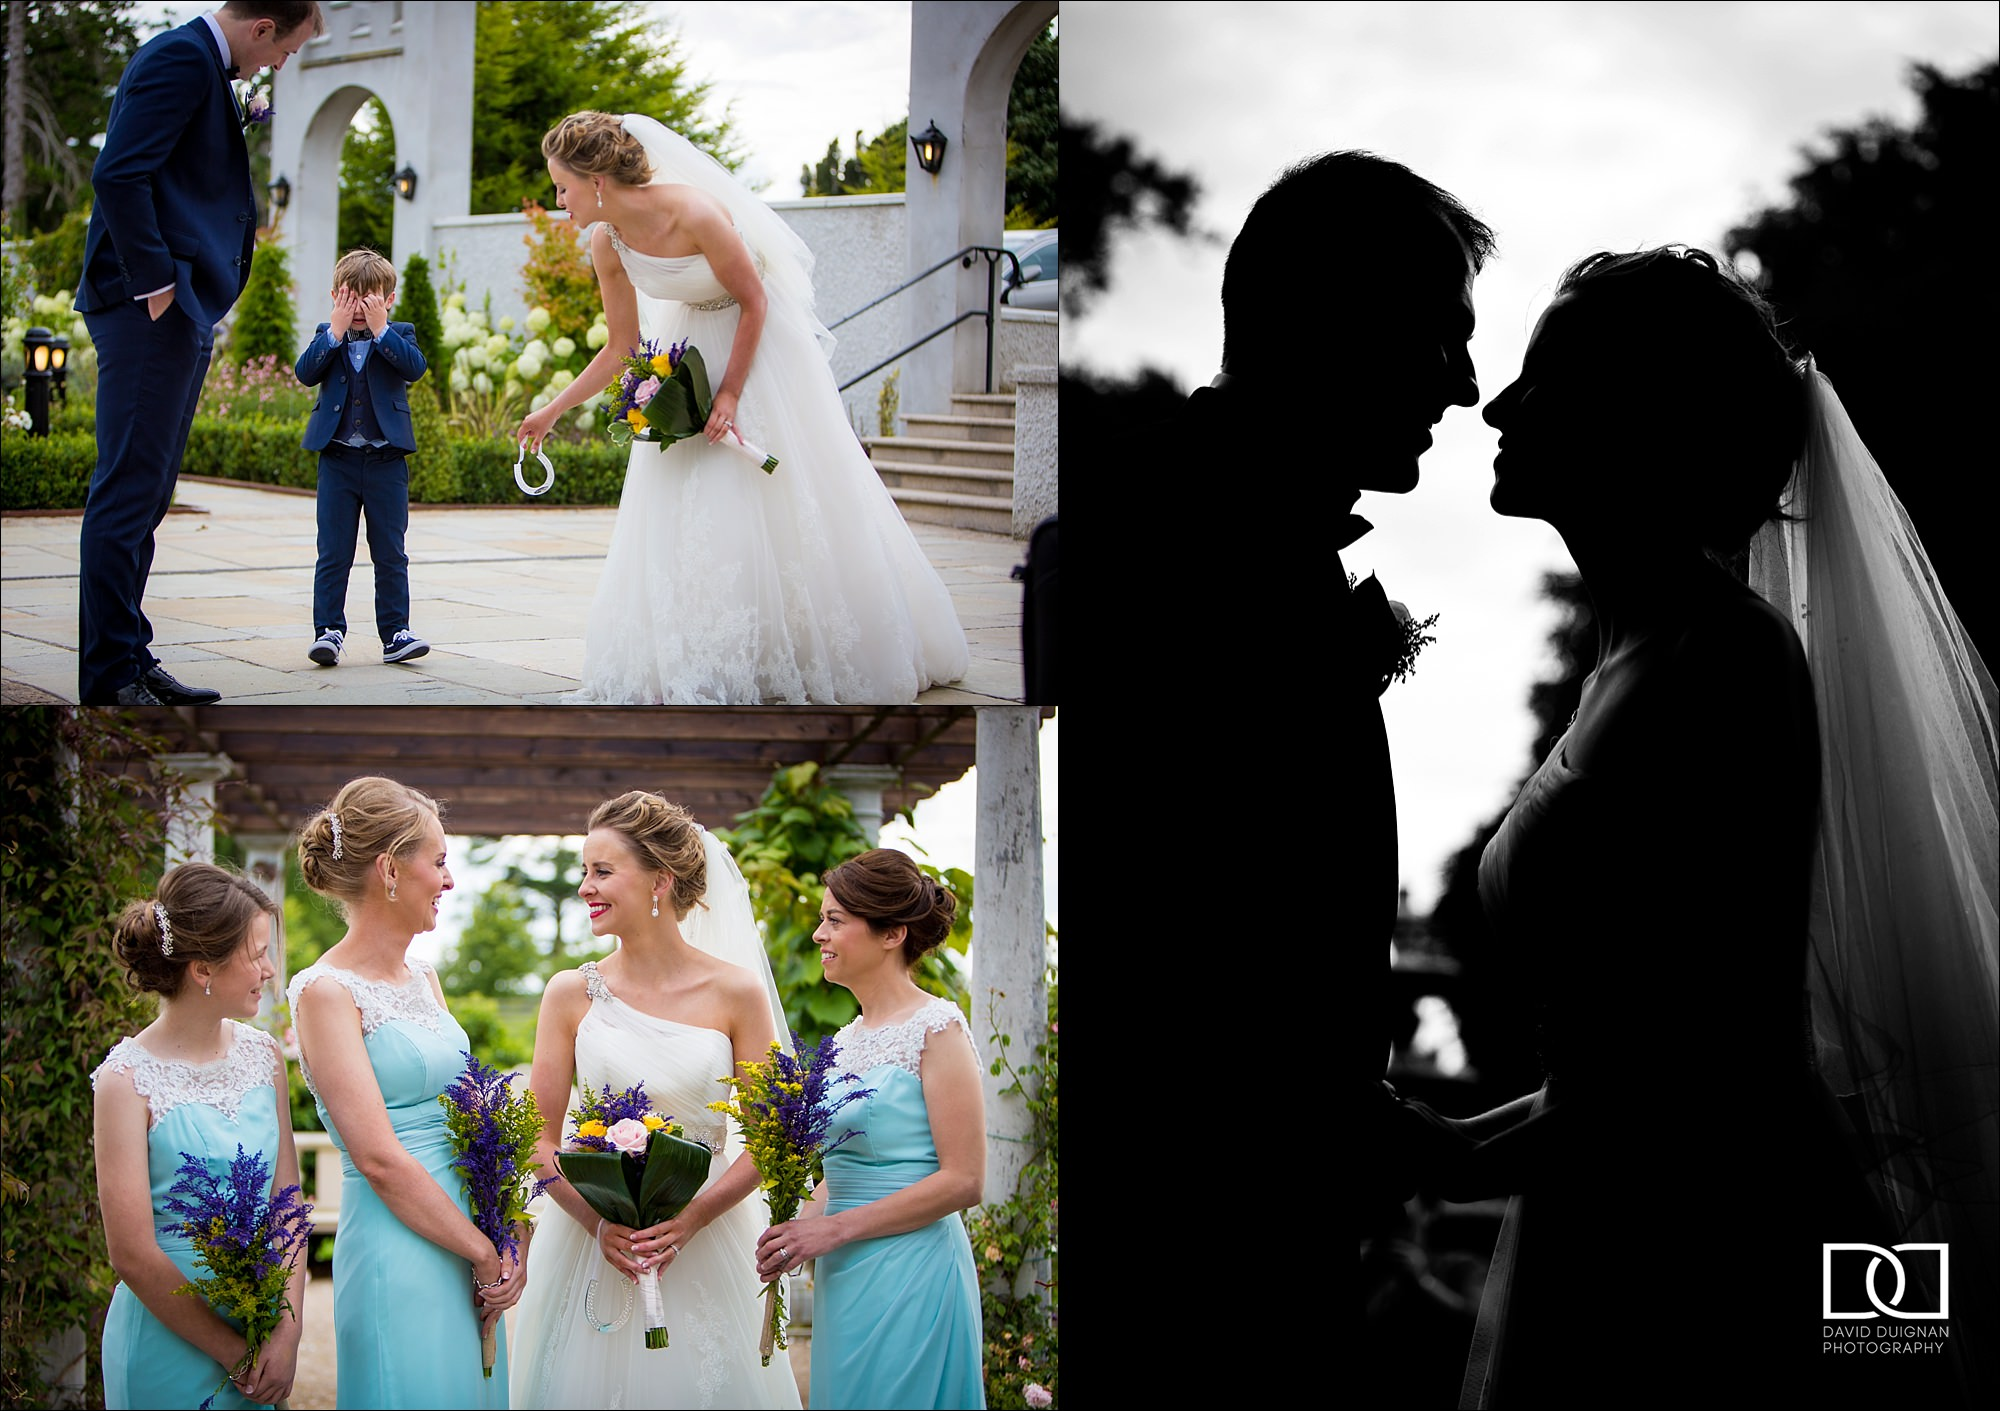 louth wedding photographer david duignan photography castle bellingham wedding Ireland 0048